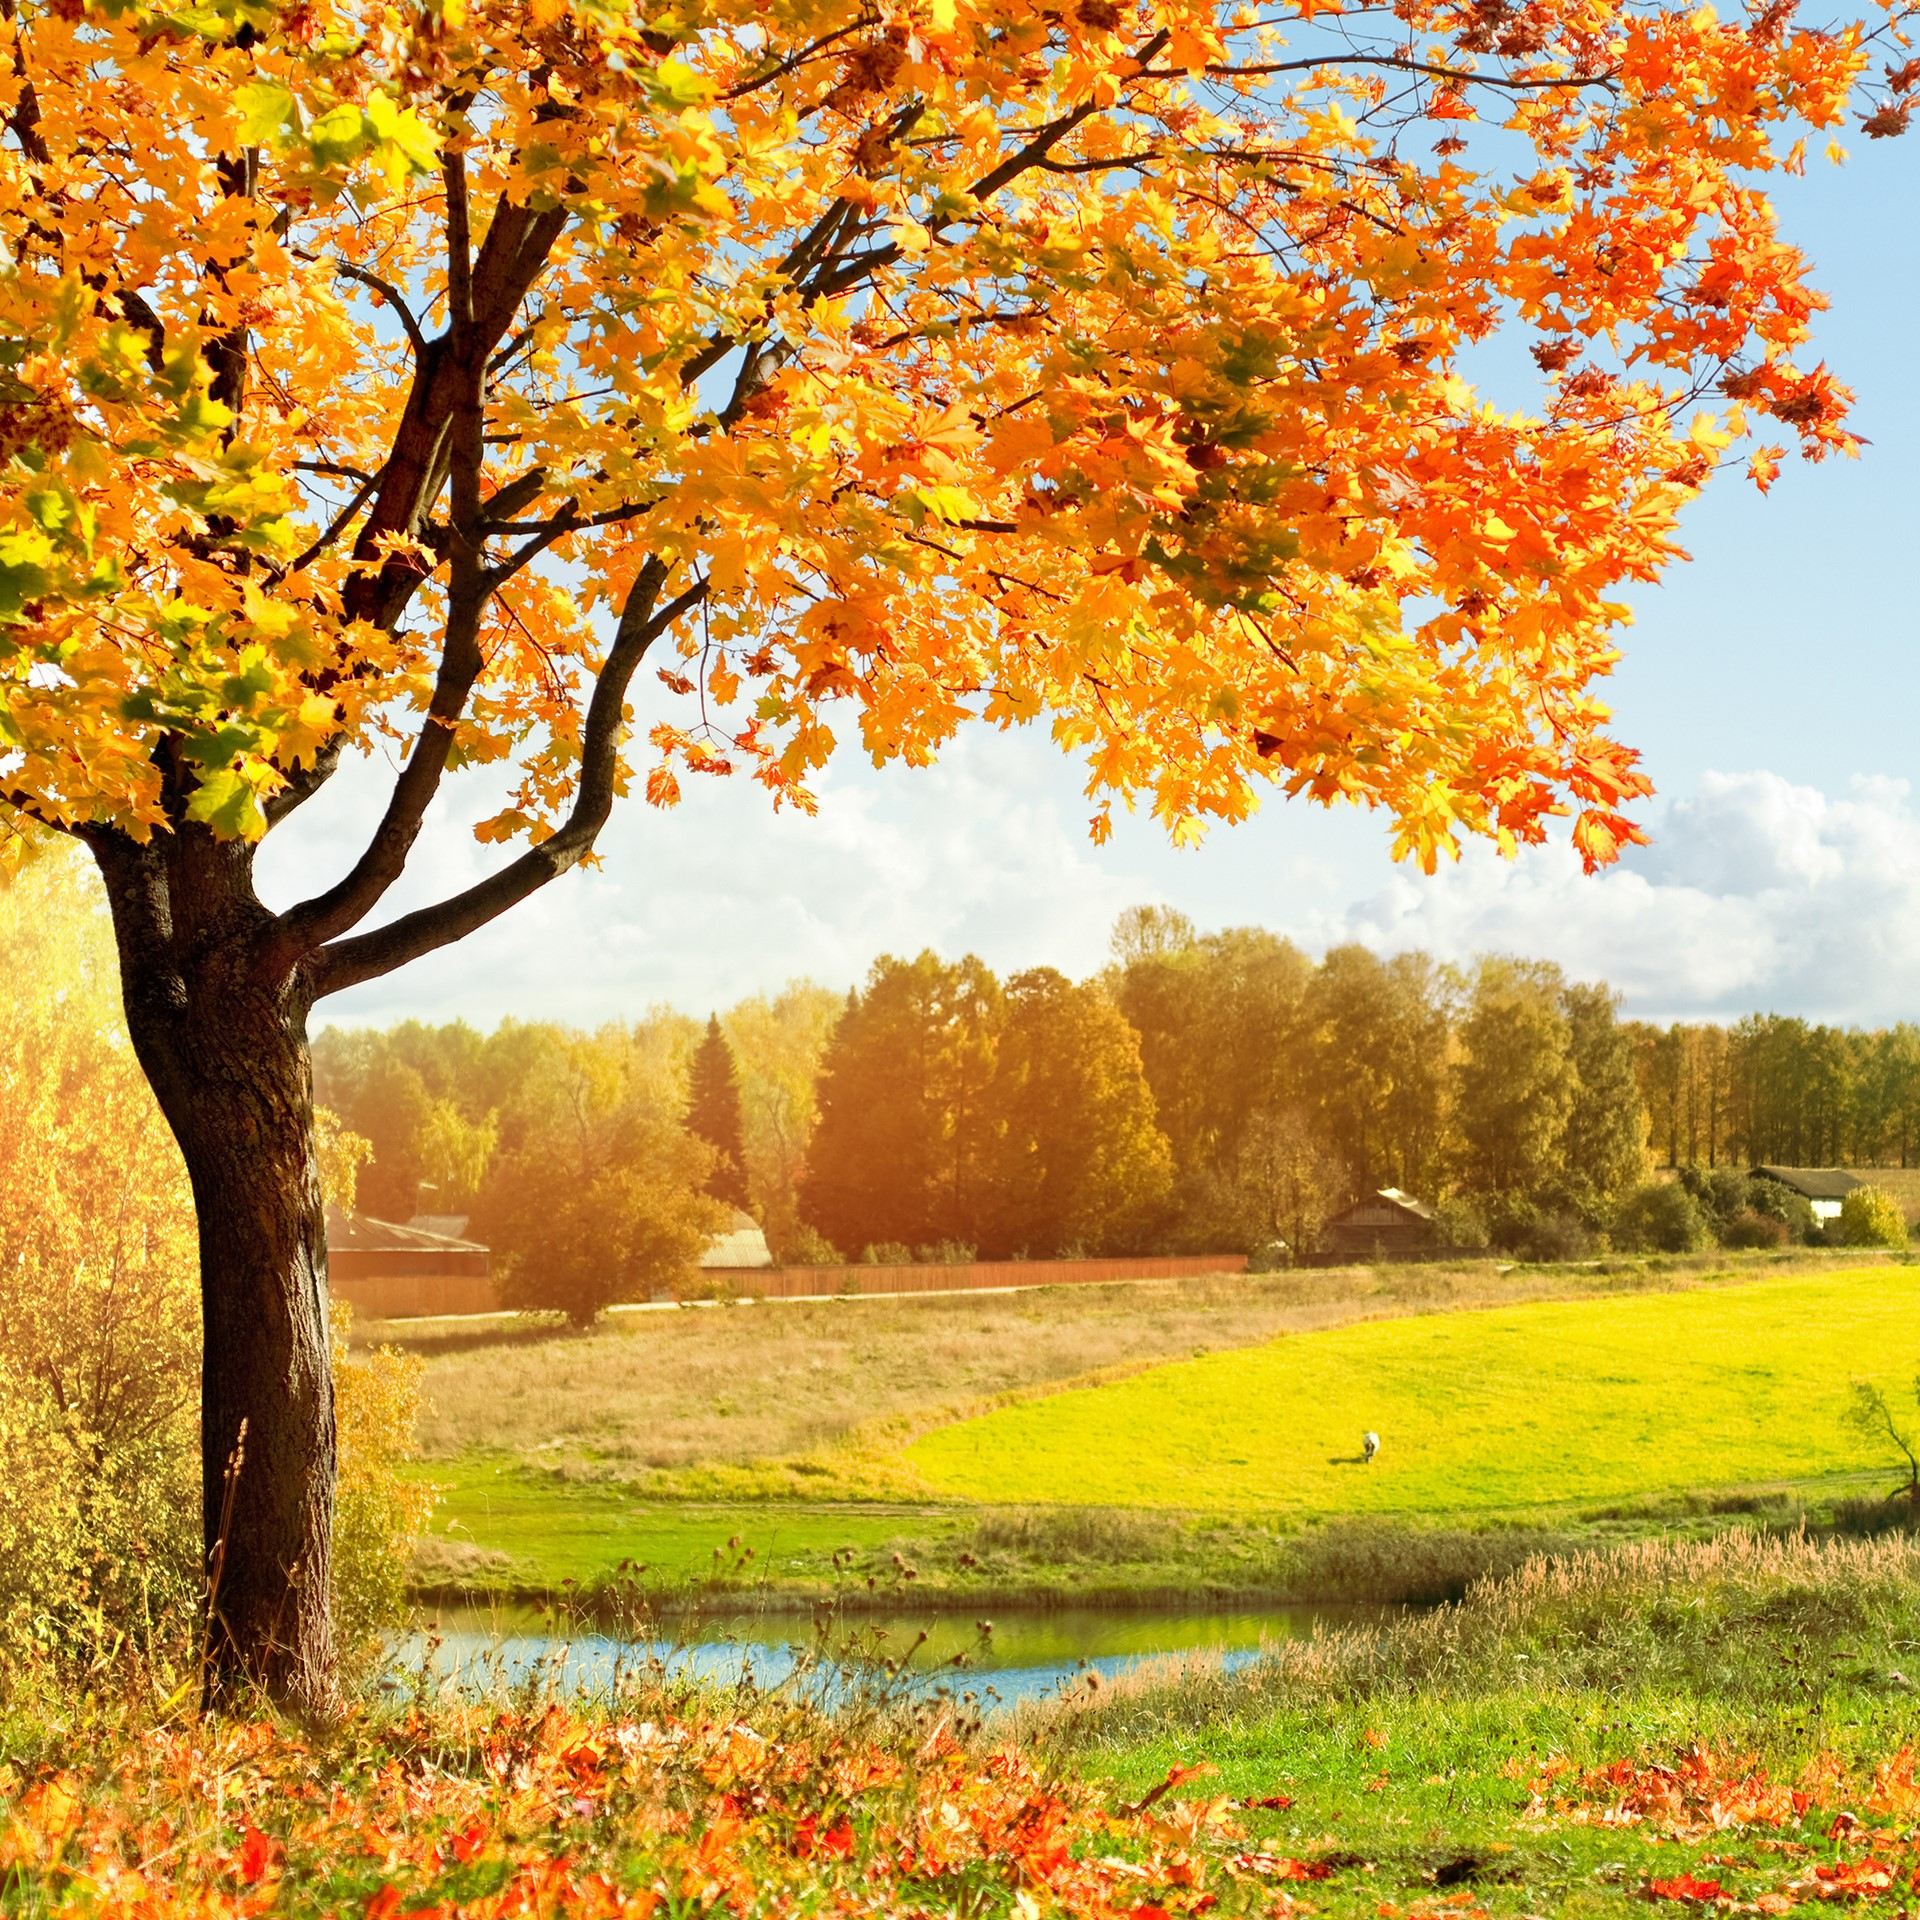 Amazing colorful Autumn Landscape wallpaper for Desktop